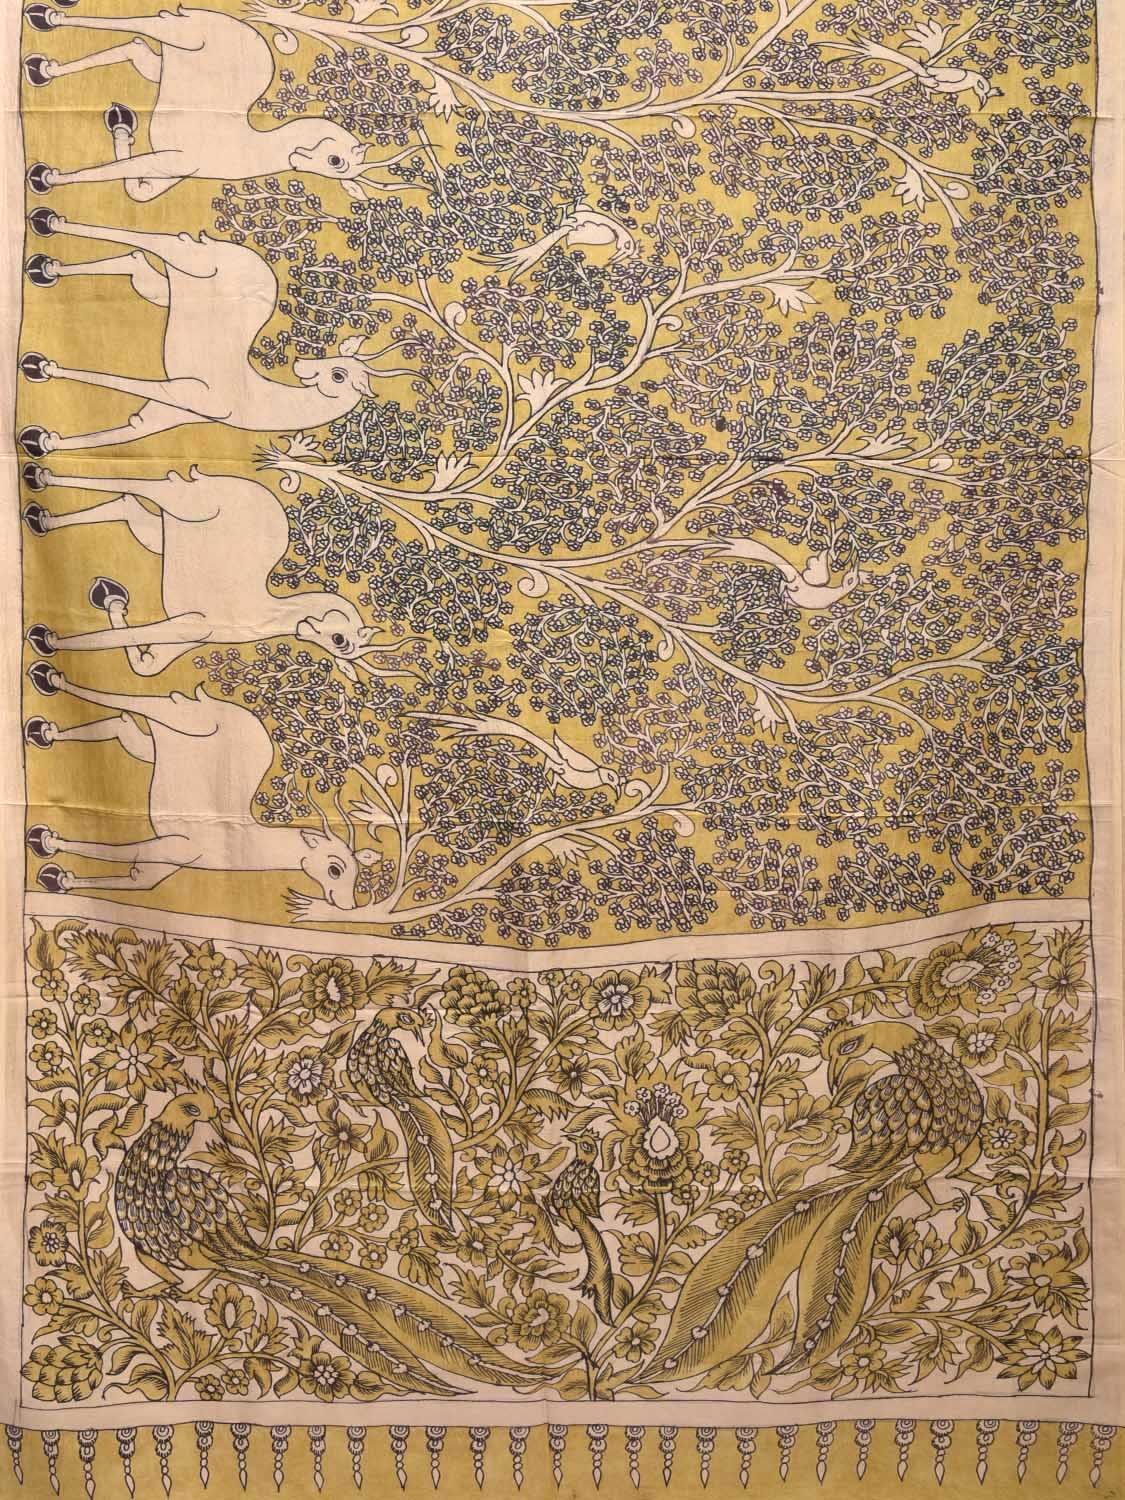 Yellow Kalamkari Hand Painted Silk Handloom Saree with Deers Design KL0258